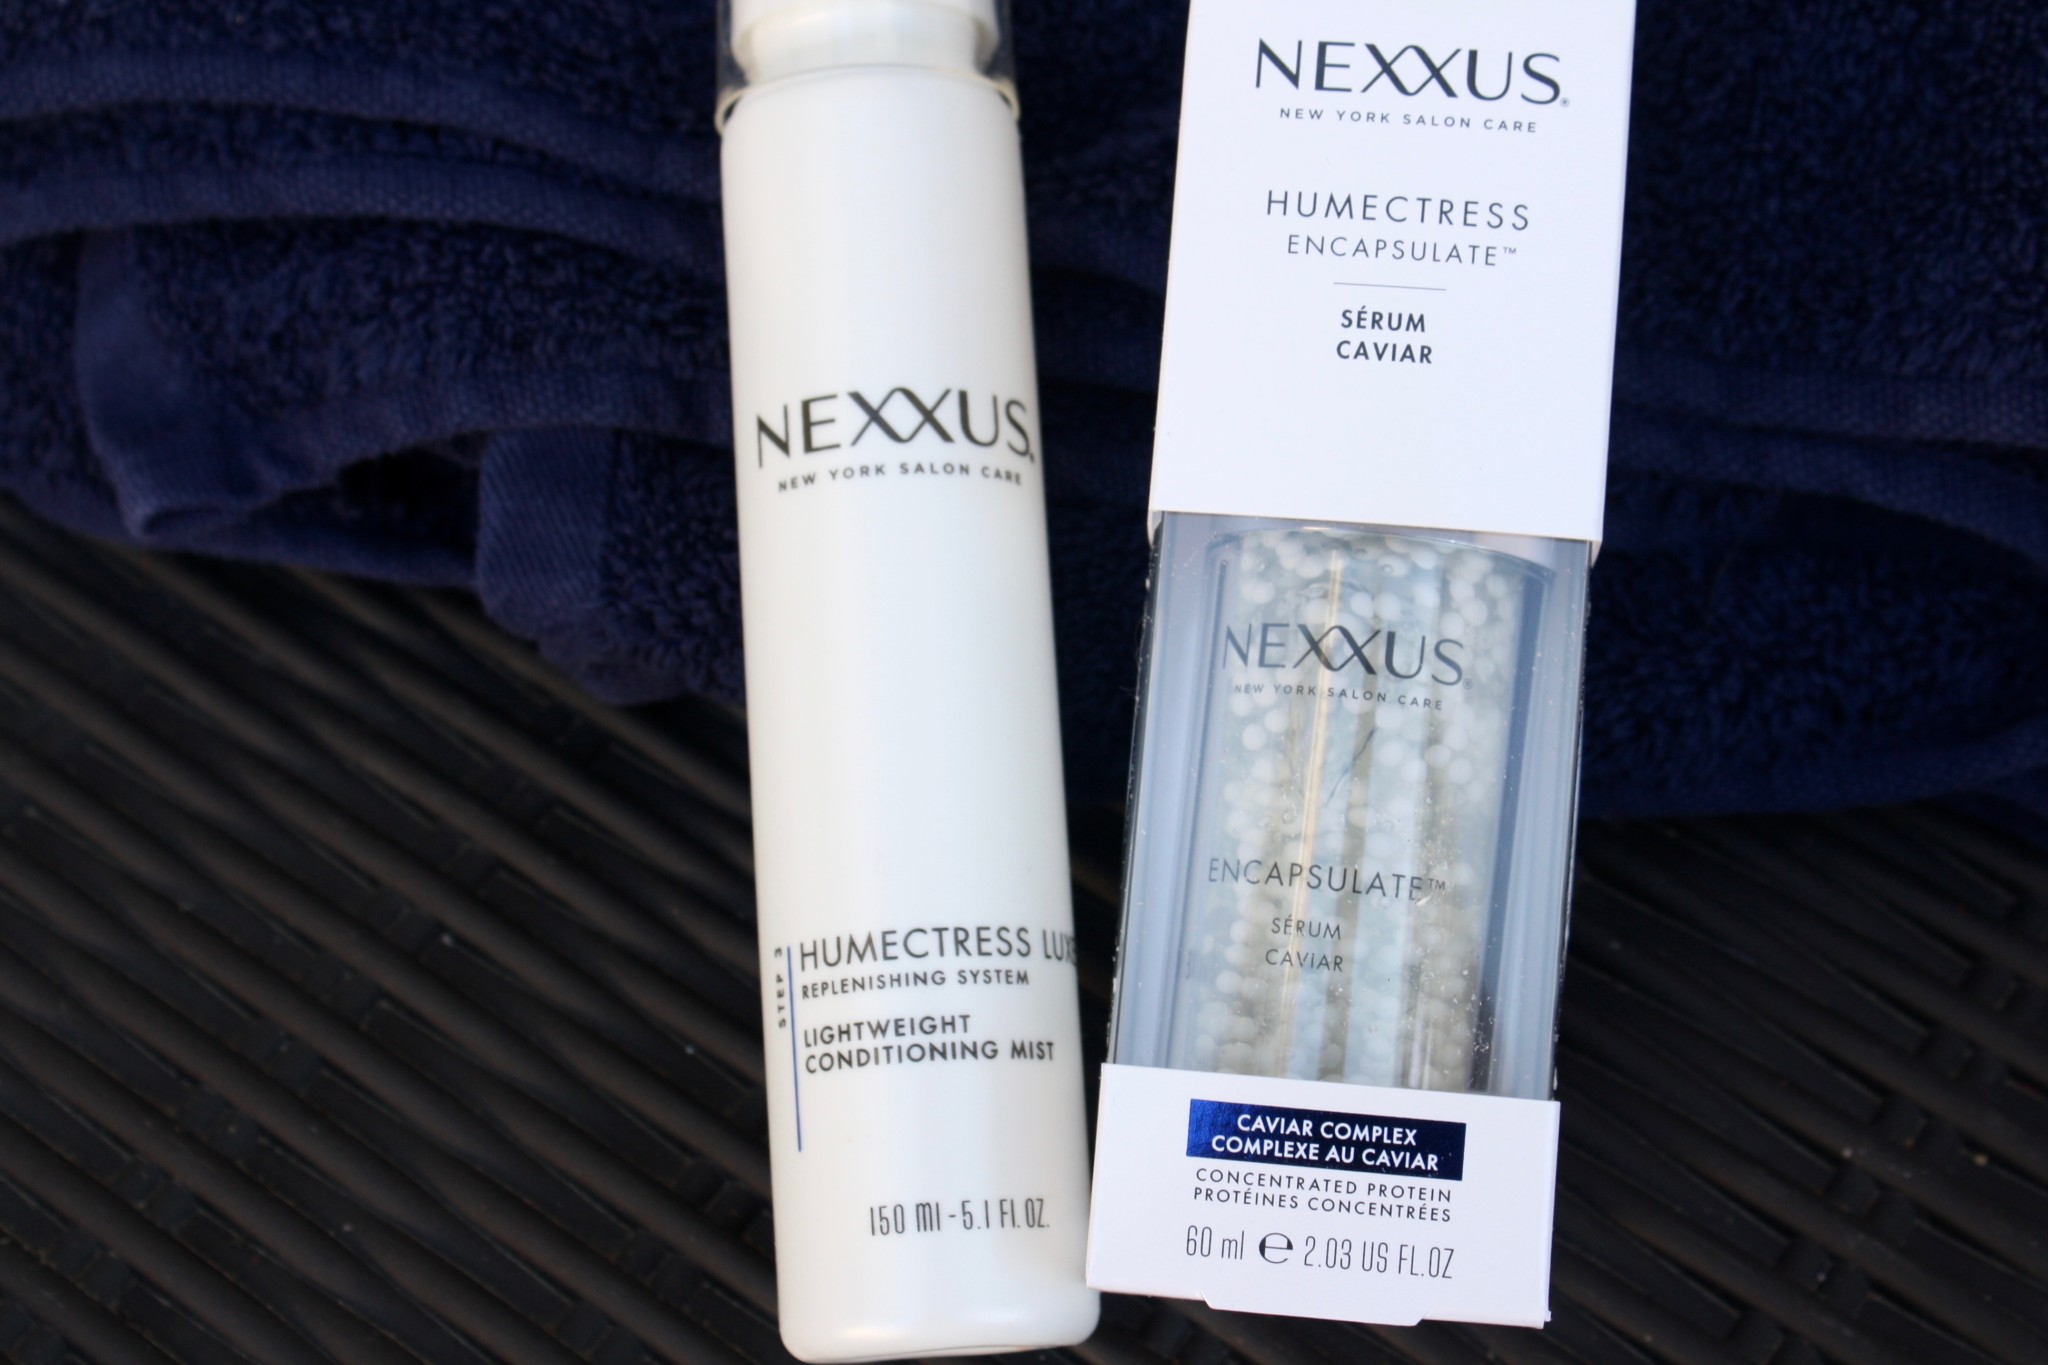 Nexxus Encapsulate